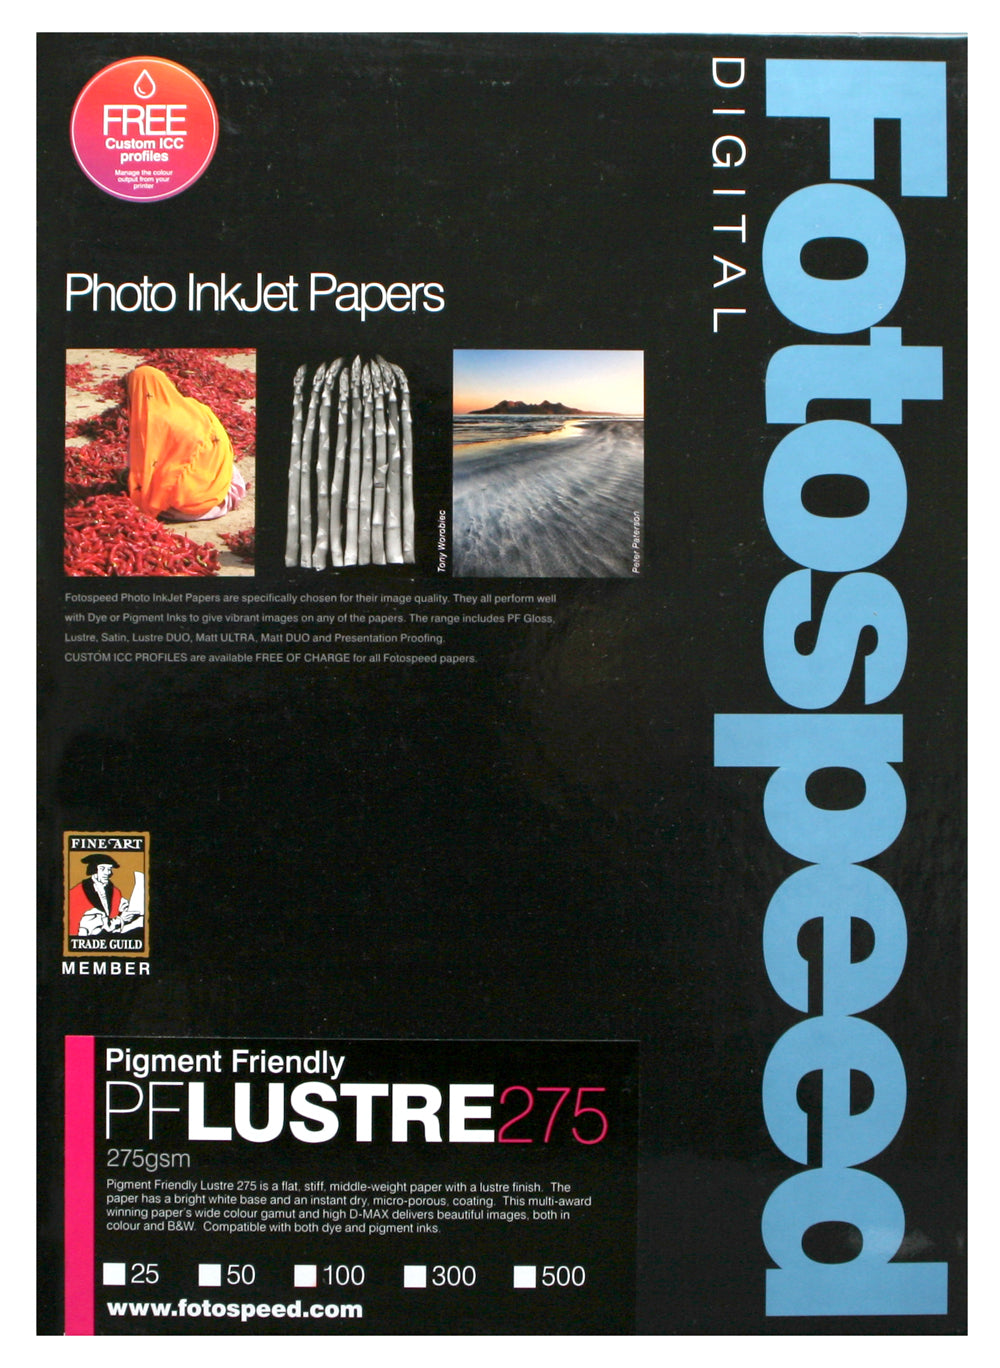 Fotospeed Pigment Friendly Lustre 275gsm